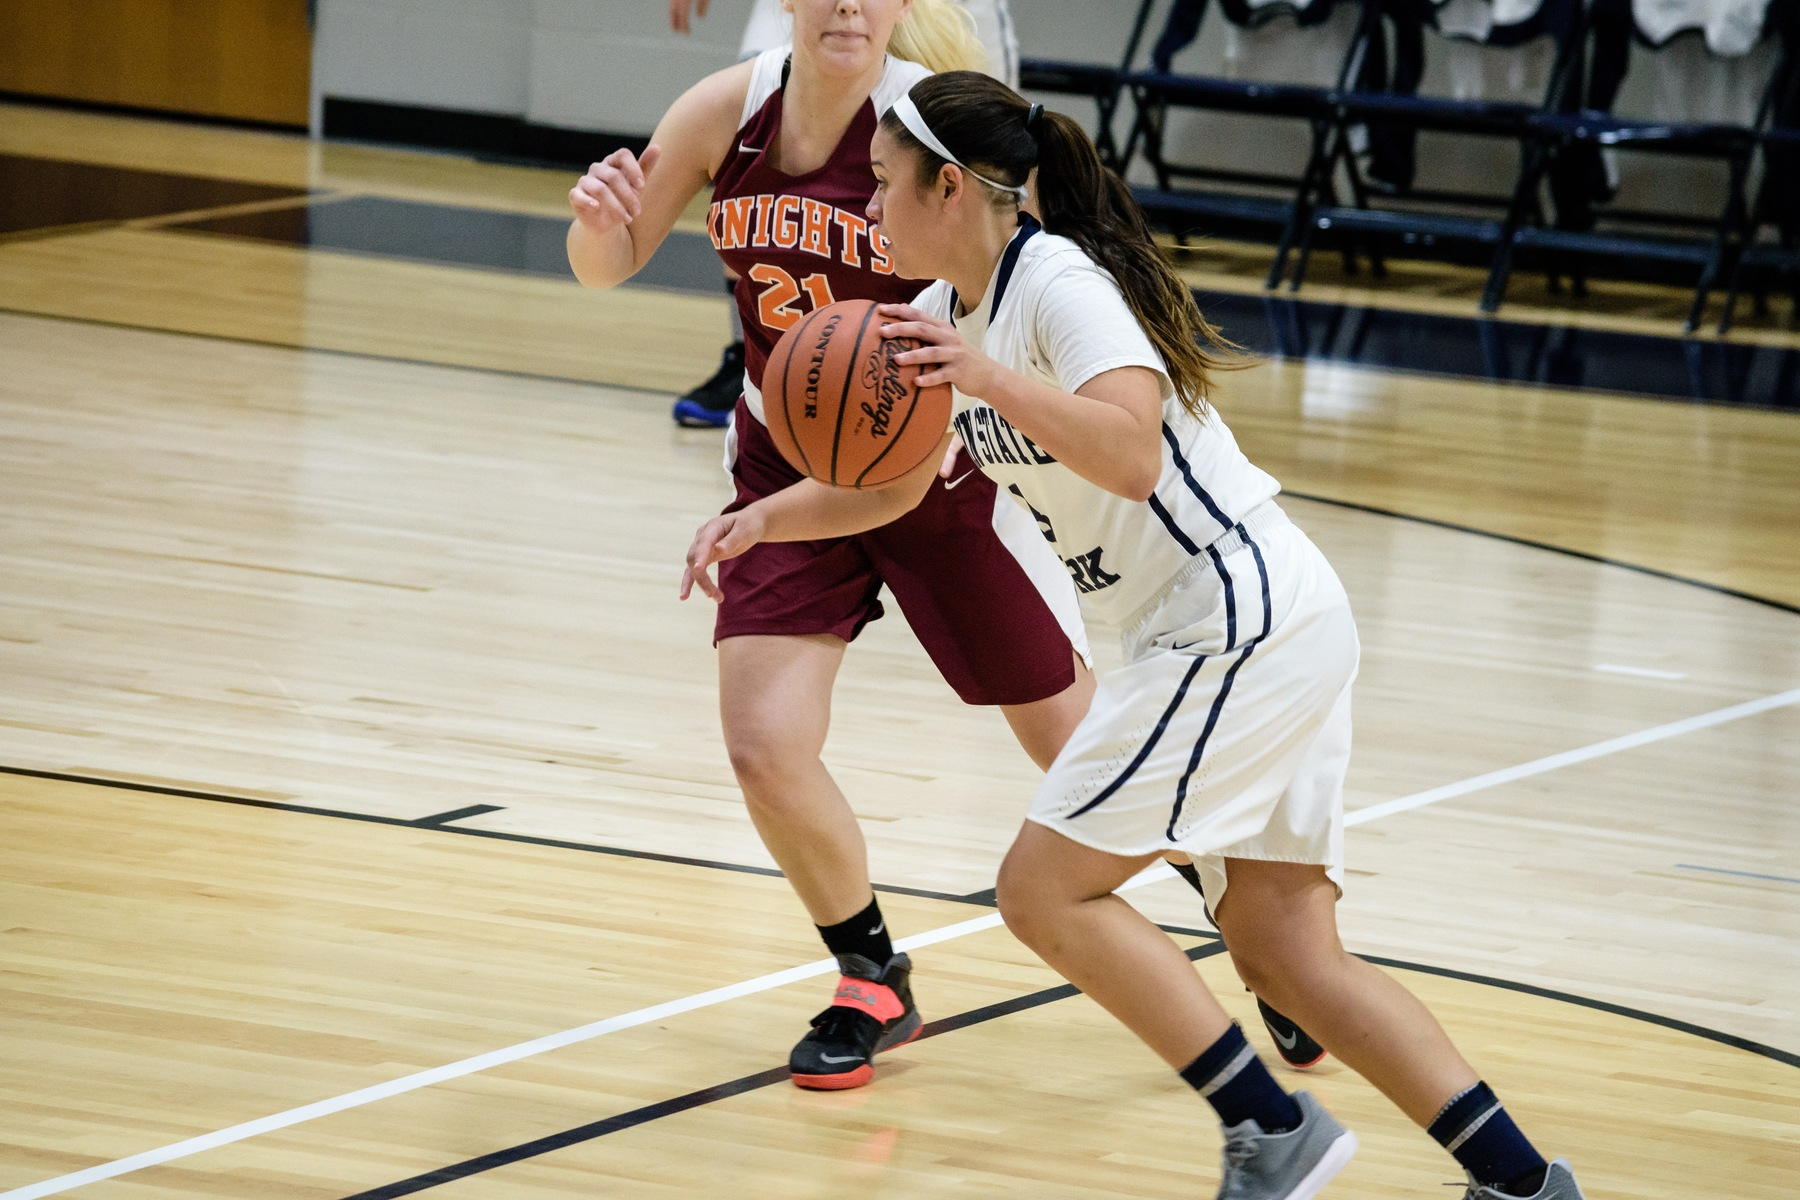 Senior Emily Colon drives to the basket during a game earlier this season.